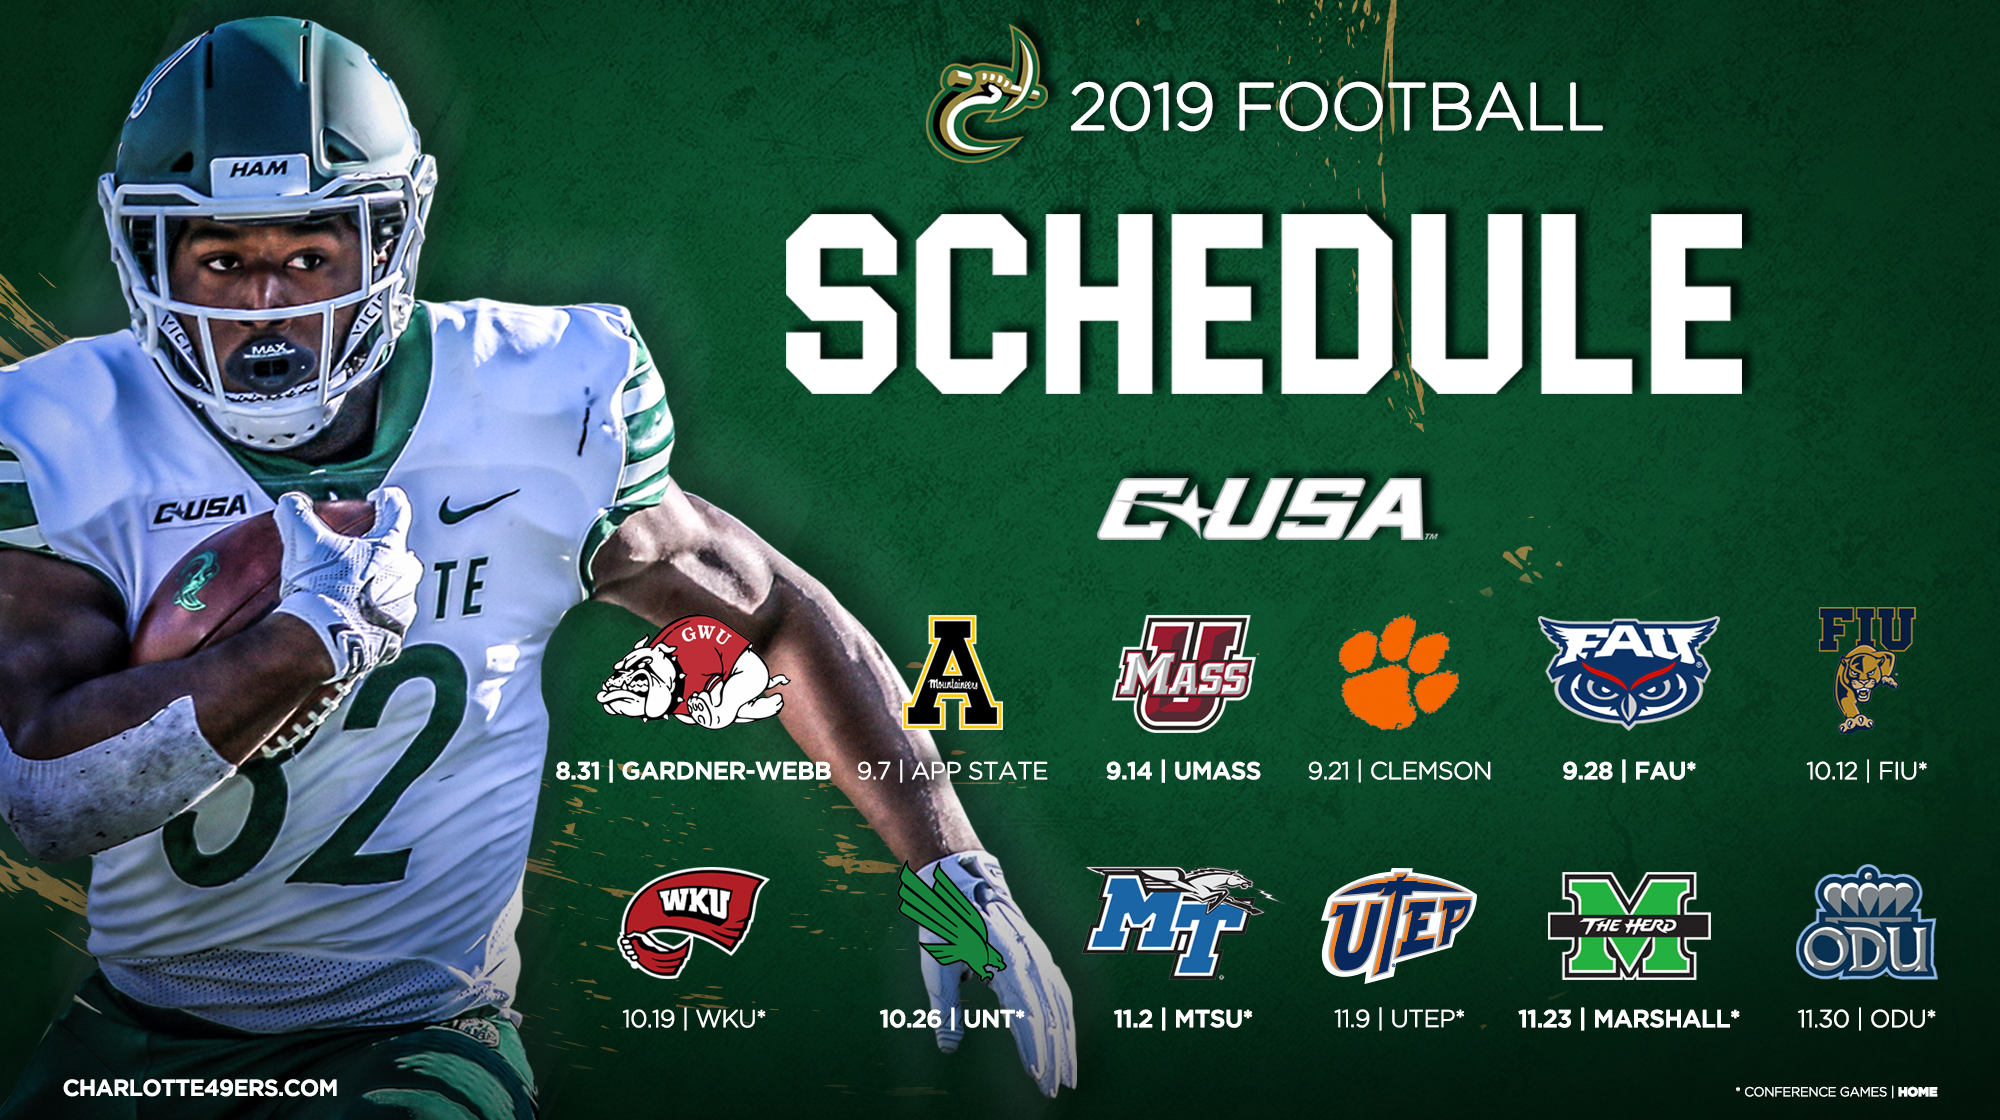 Arena Football Schedule 2019 2019 Football Schedules released